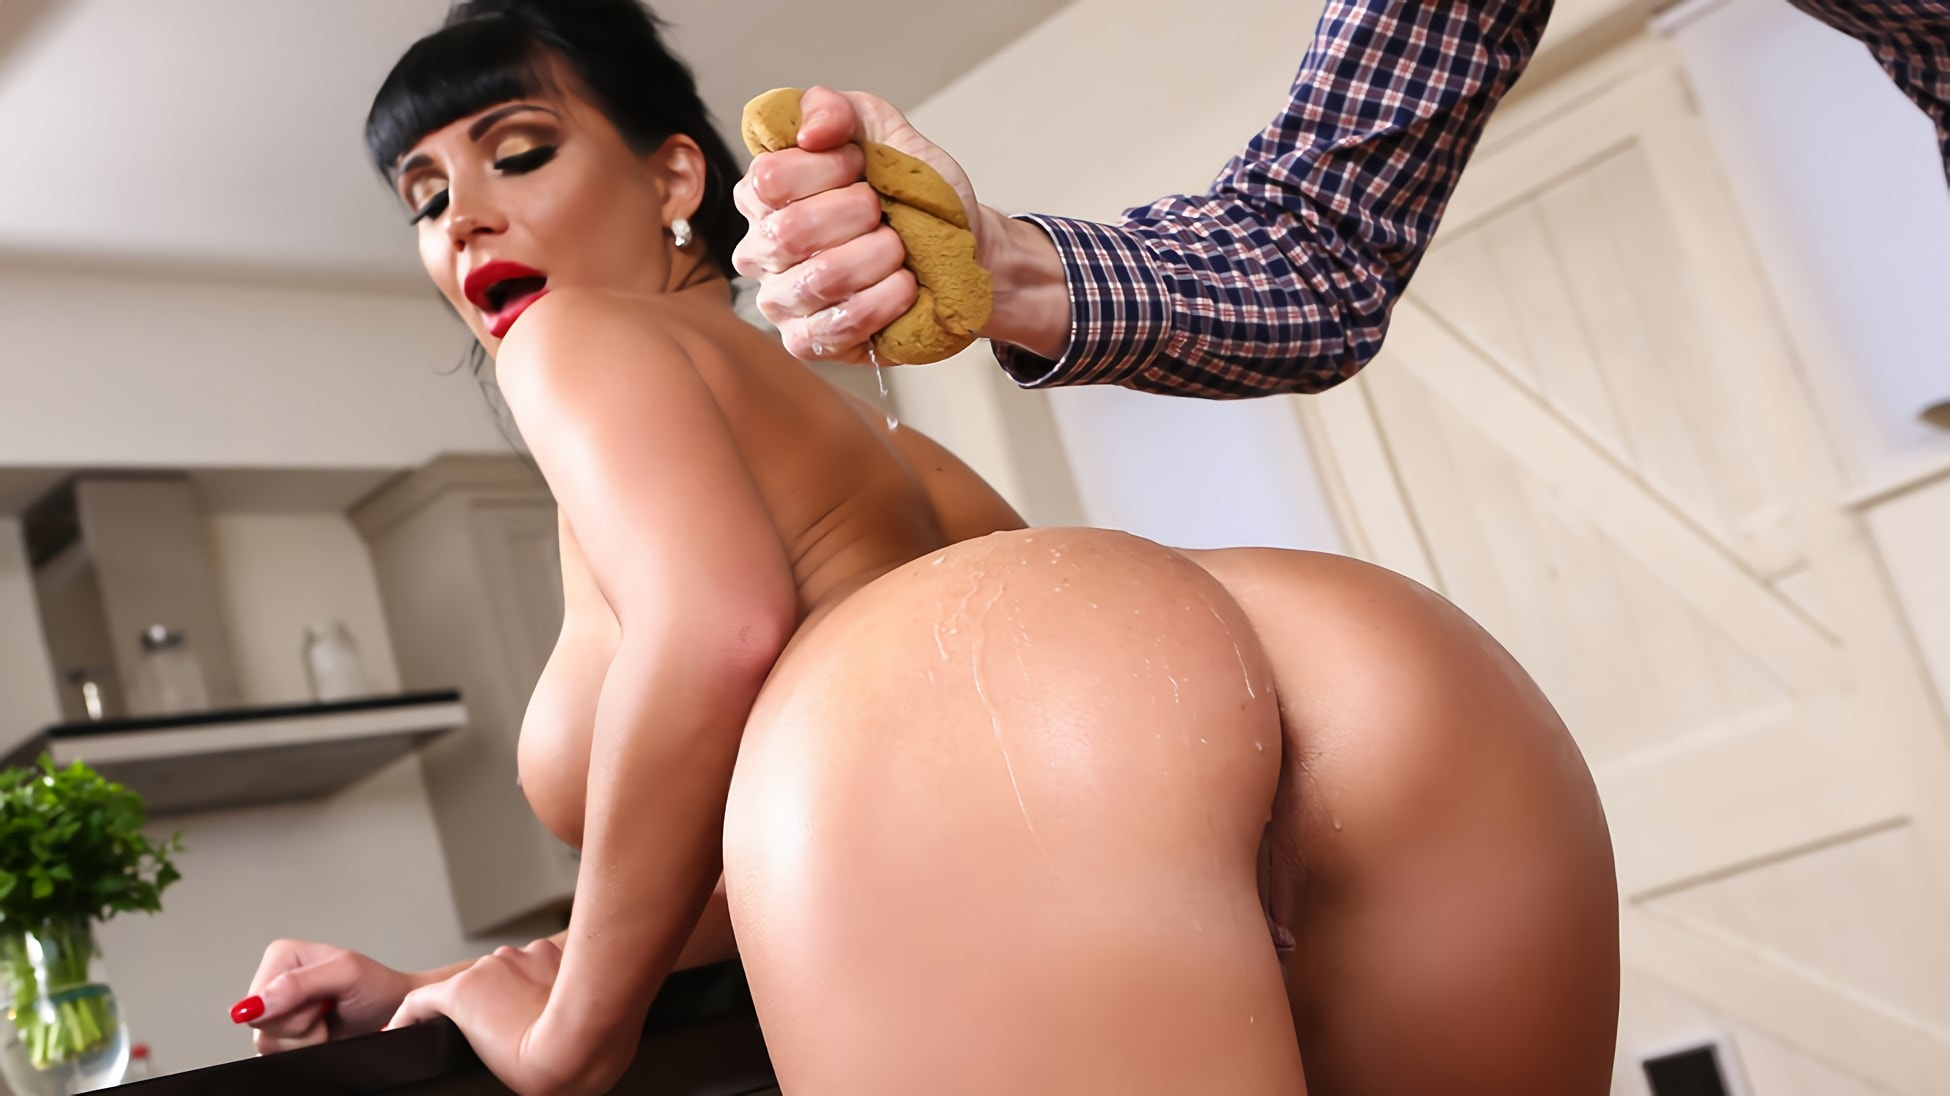 Brazzers 'Clean Up On Aisle Valentina' starring Valentina Ricci (photo 6)